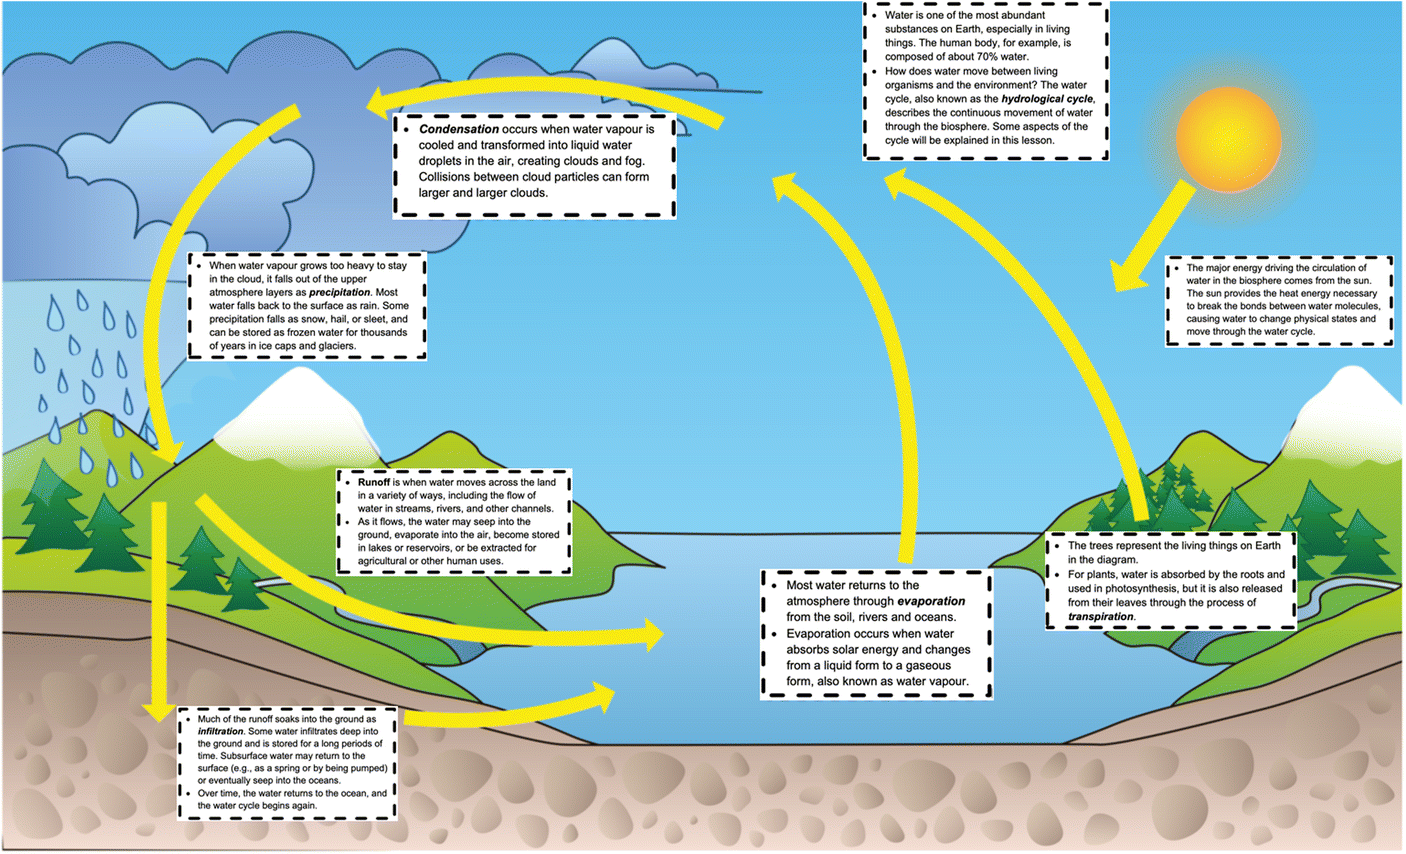 Tracing Enhances Recall and Transfer of Knowledge of the Water Cycle